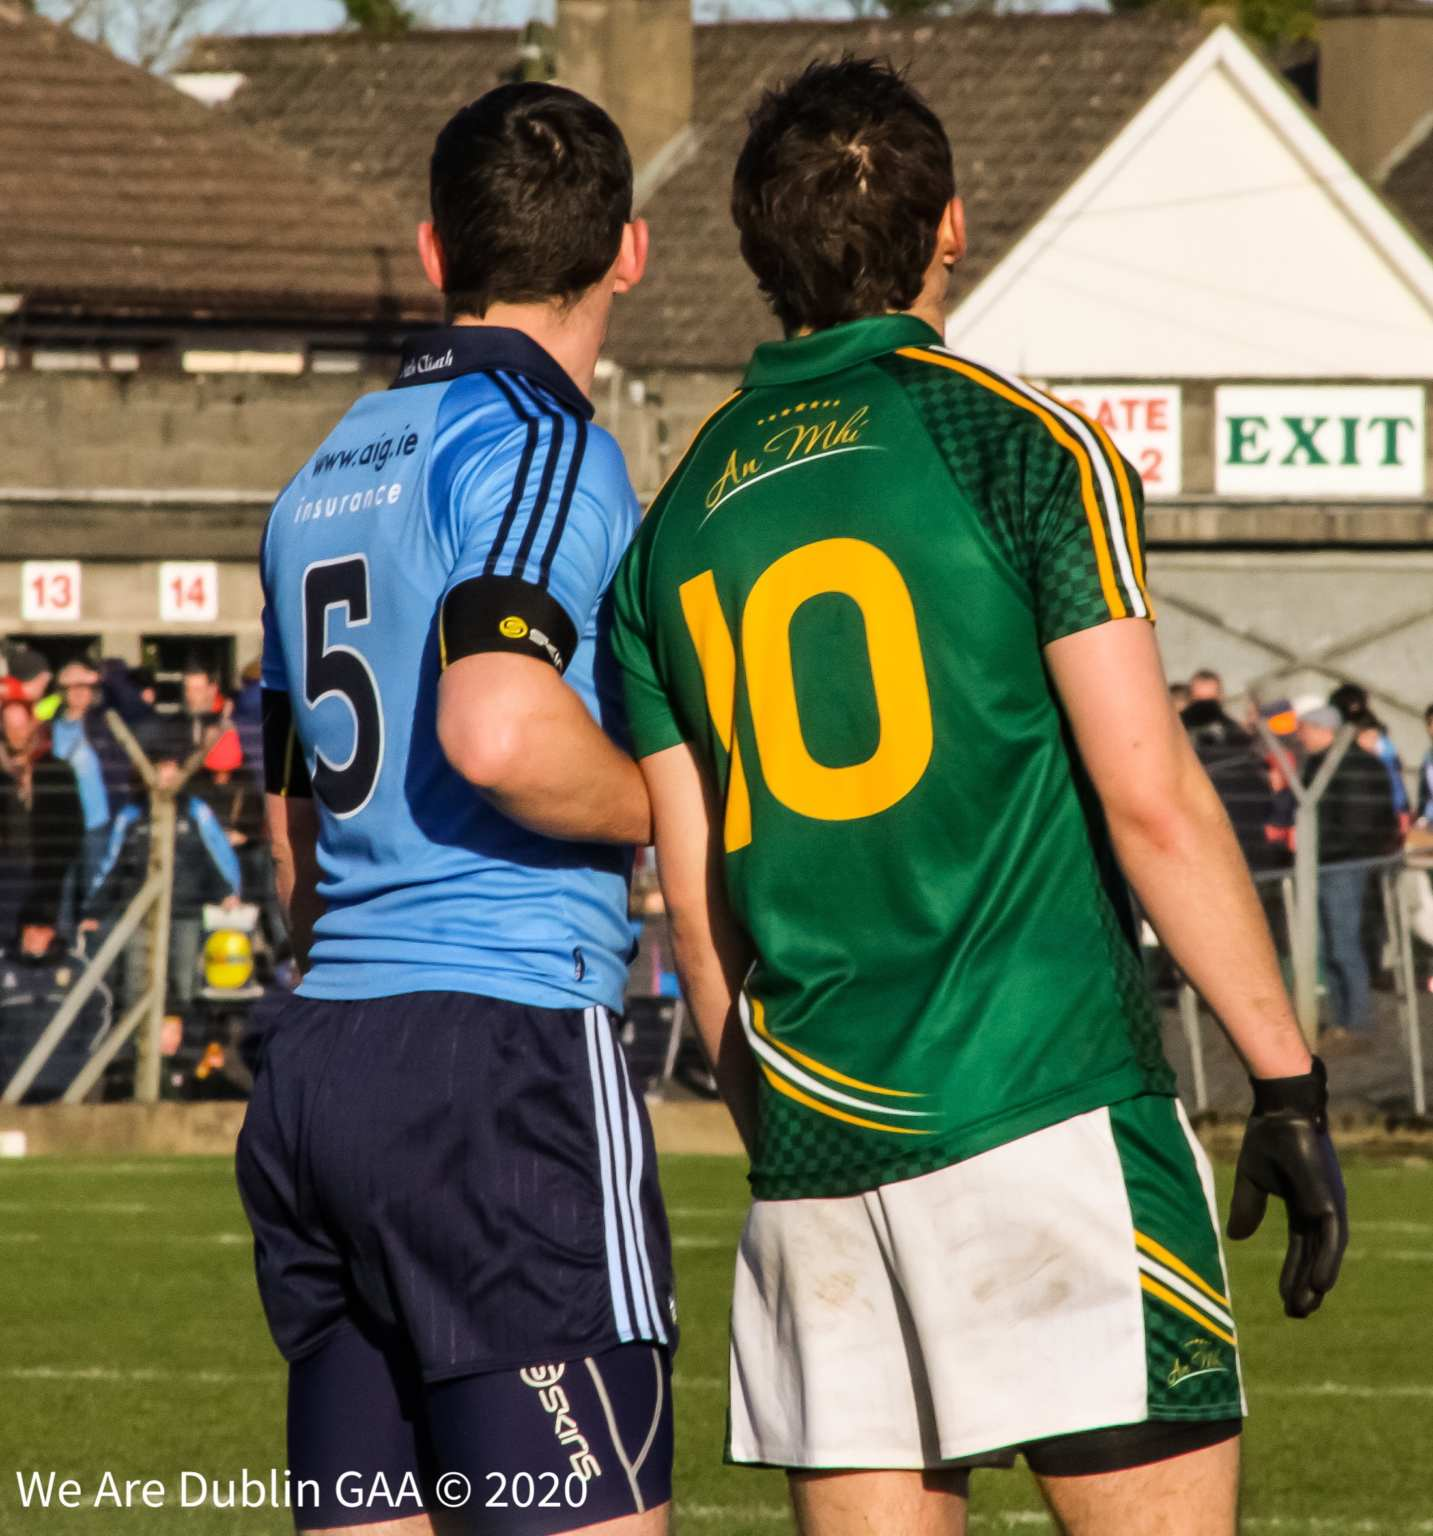 A Dublin and Meath player stand side by side during a game, the Dublin-Meath rivalry though has all but extinguished since the naughties.